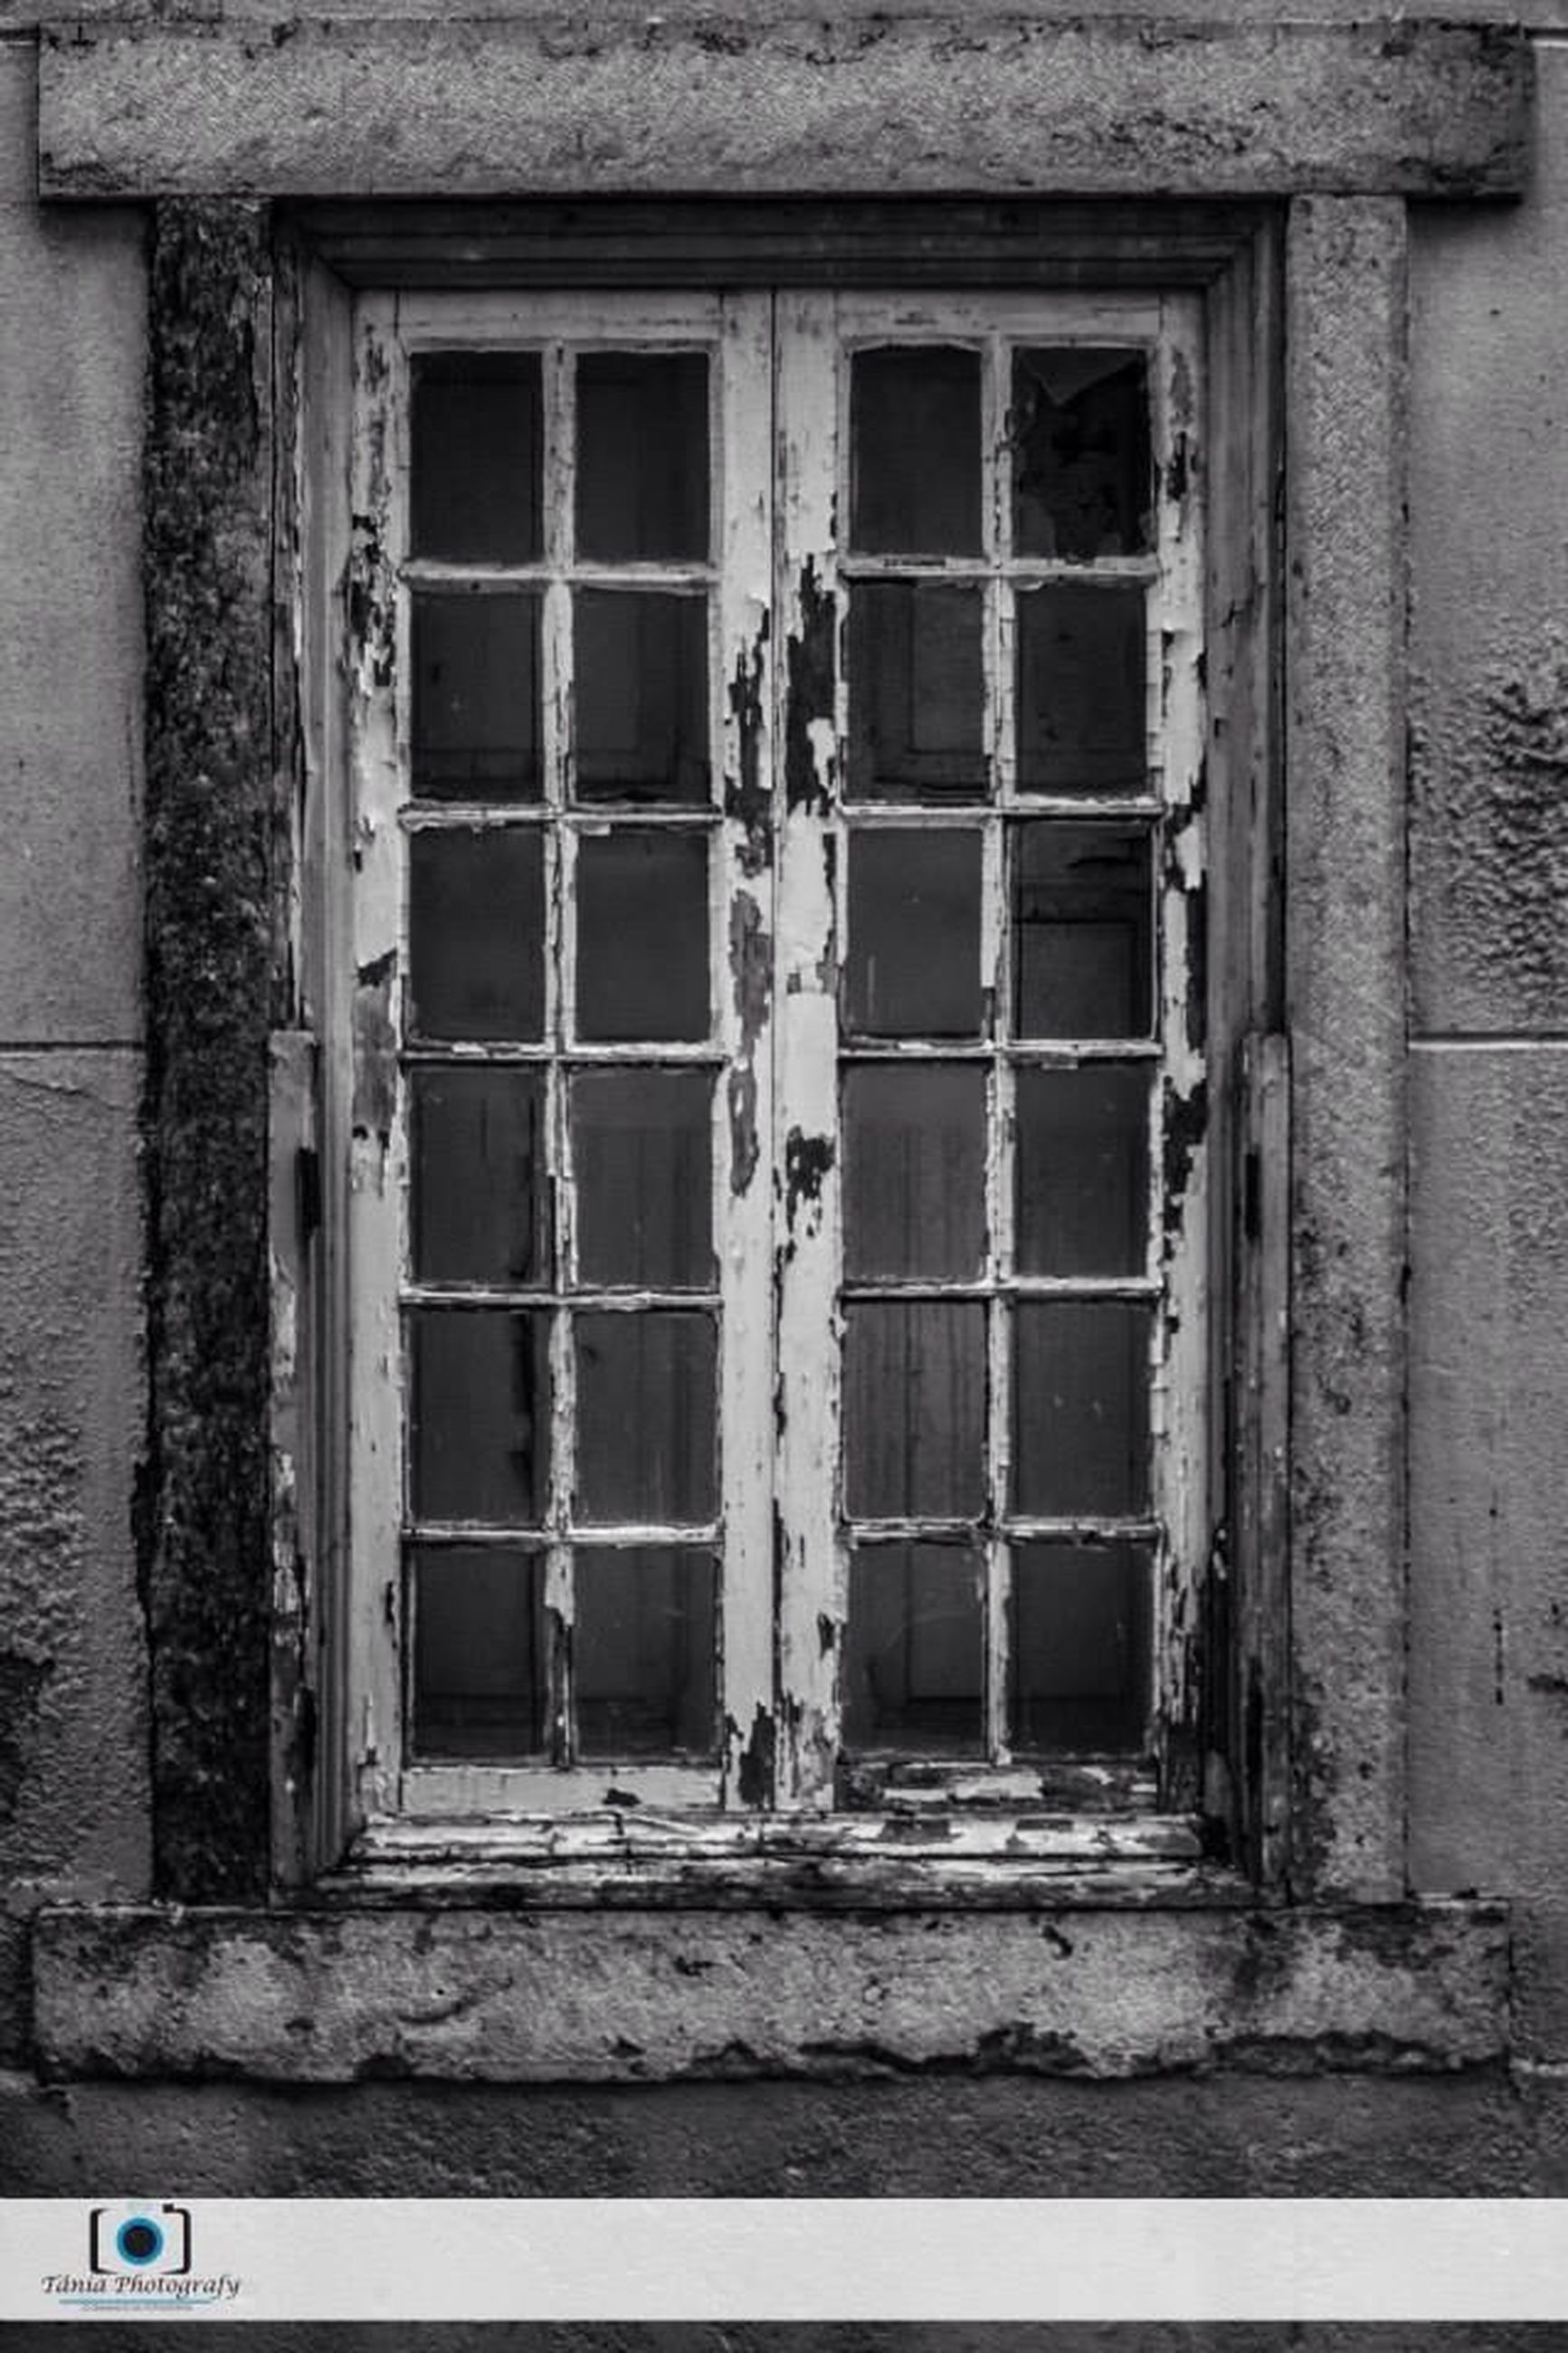 window, architecture, built structure, building exterior, abandoned, old, damaged, obsolete, weathered, house, run-down, door, deterioration, closed, day, wall - building feature, building, wall, bad condition, outdoors